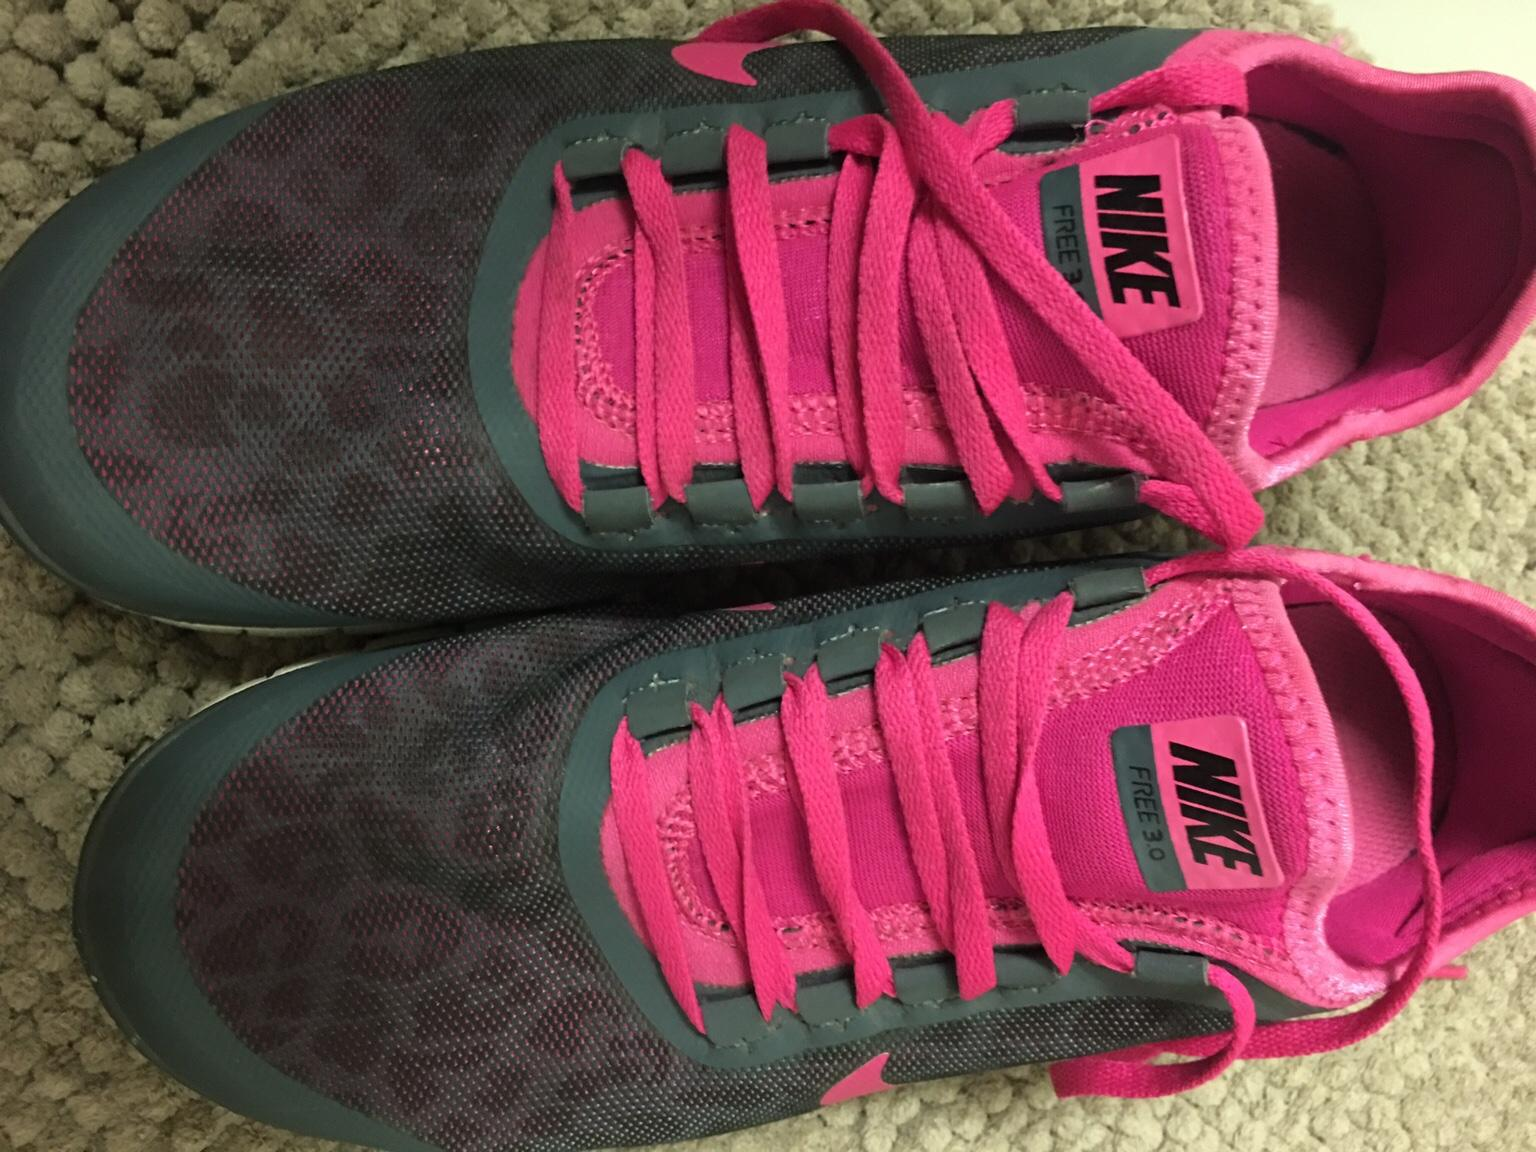 Nike Leopardmuster pink in 55122 Mainz for €46.00 for sale